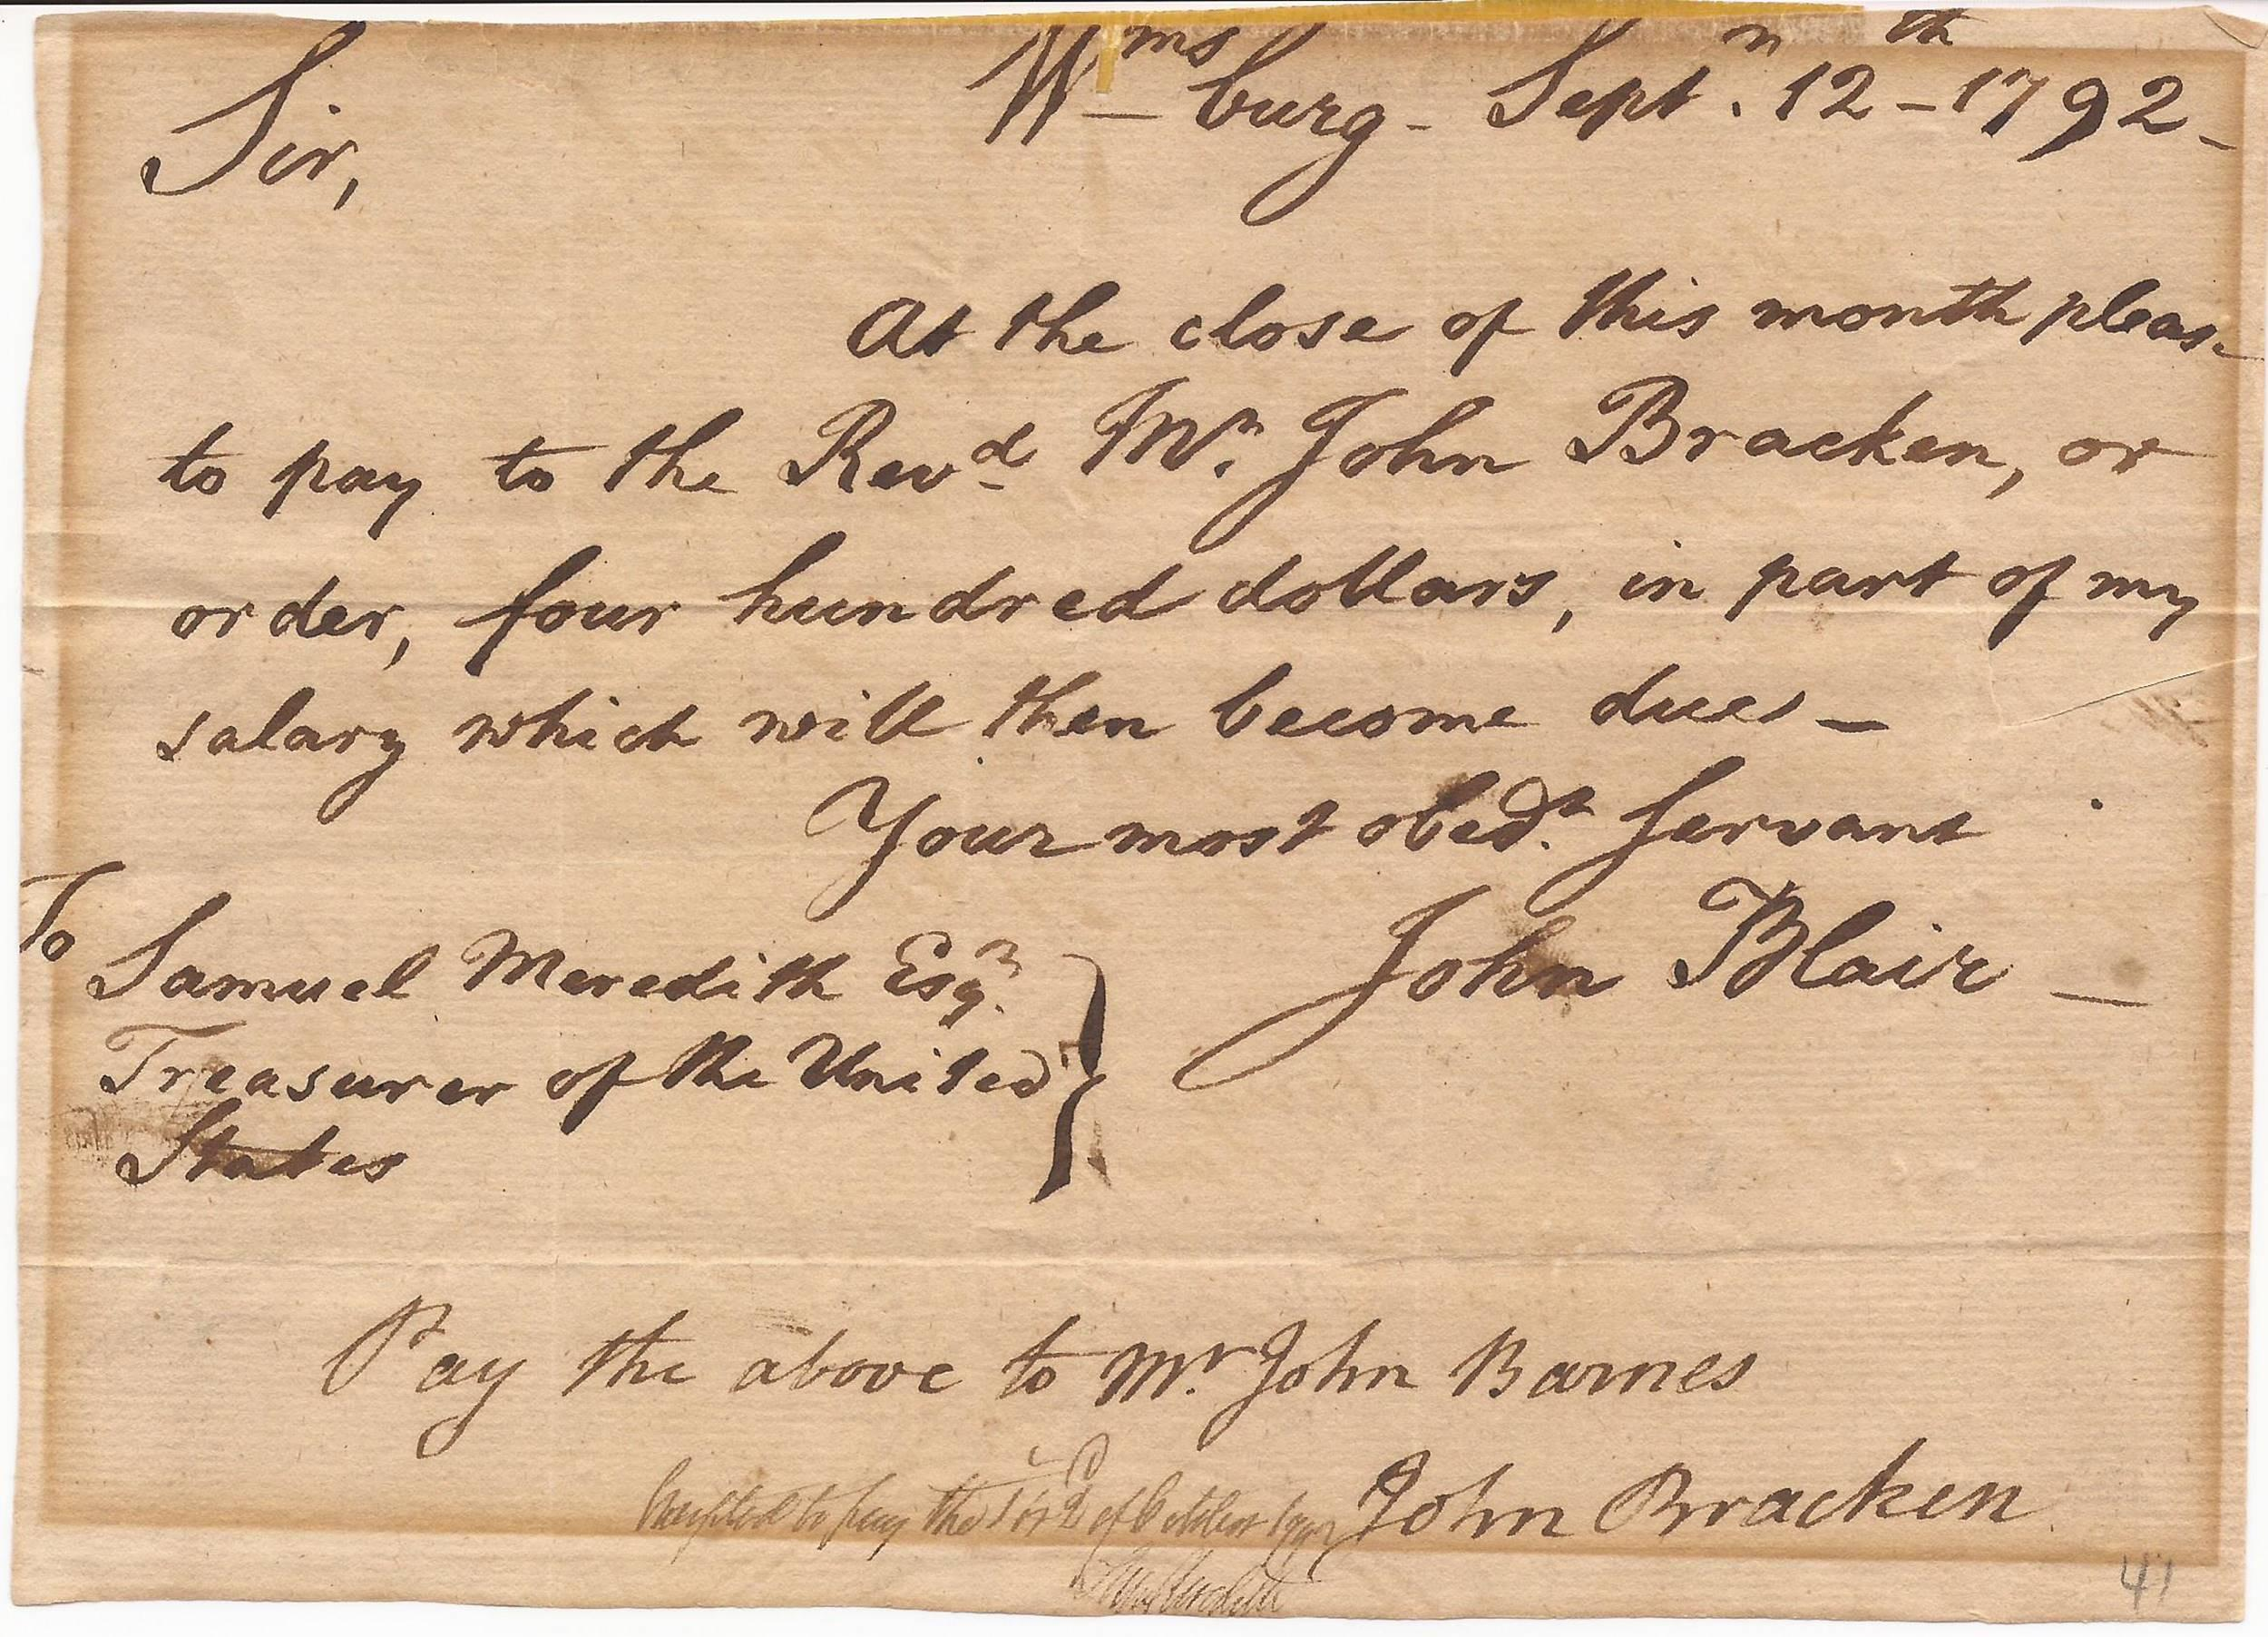 U.S. Supreme Court Justice John Blair asks Treasurer Samuel Meredith to Pay Part of His Salary to a Williamsburg Minister and Educator